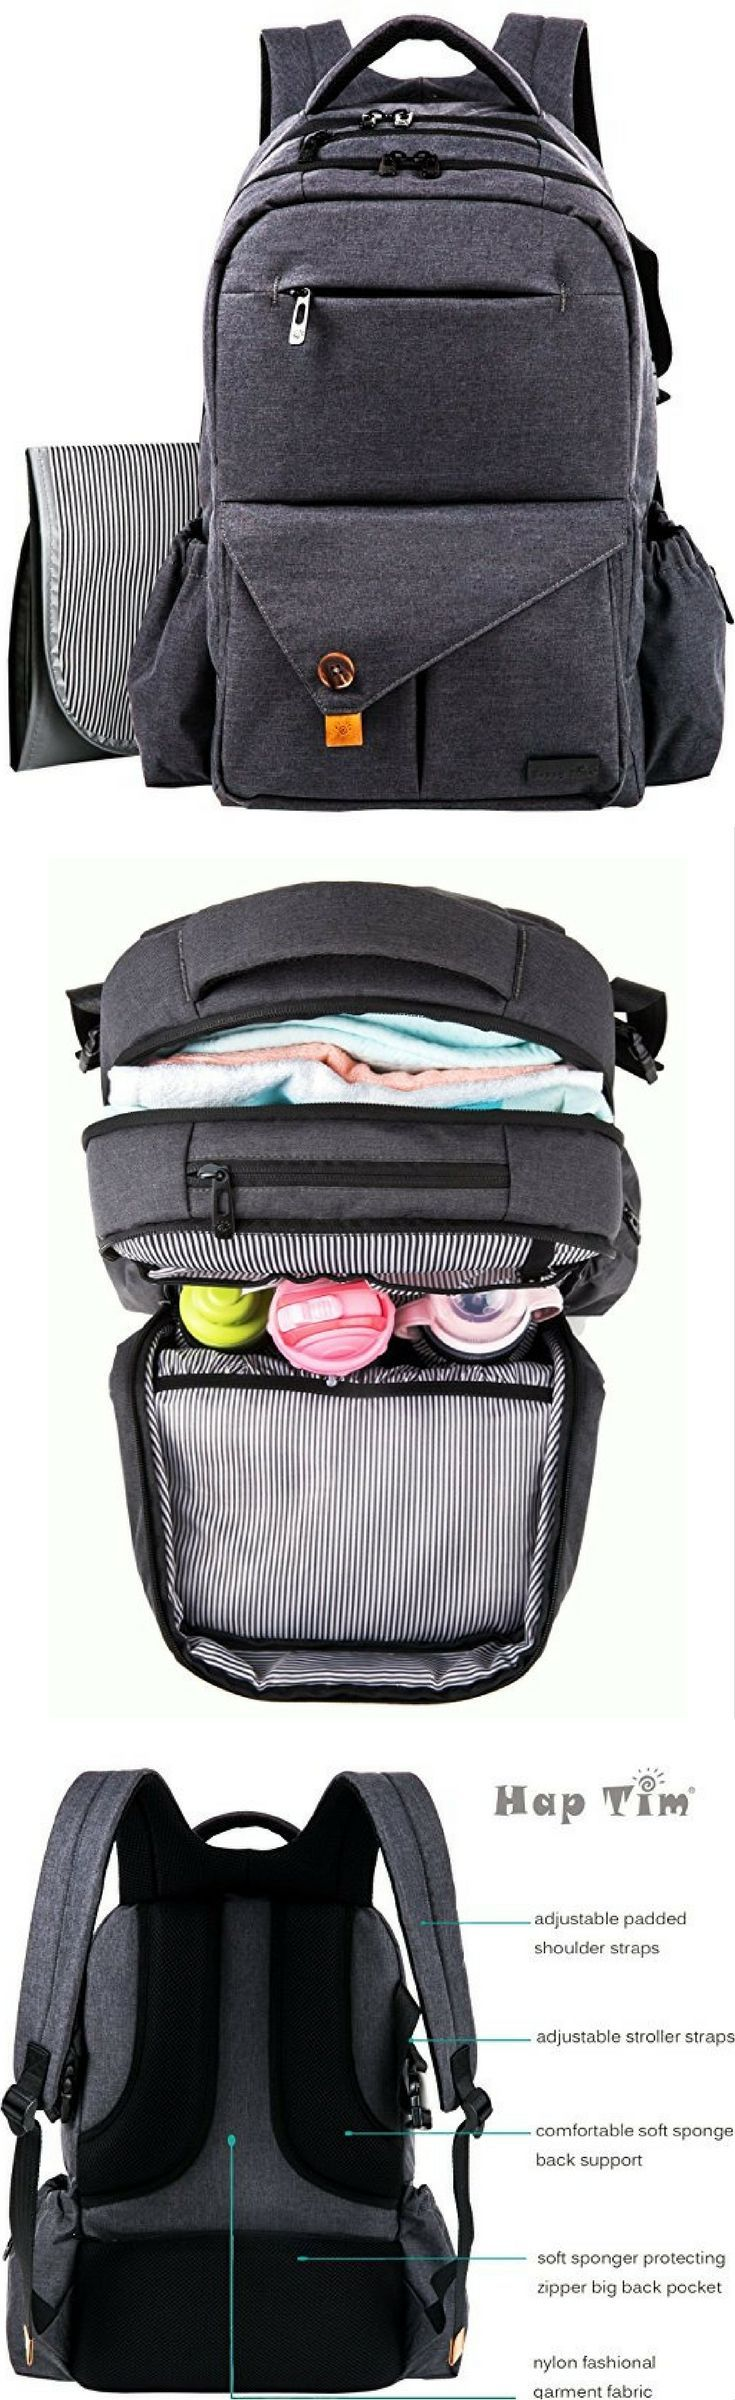 HapTim Multi-function Large Baby Diaper Bag Backpack W/Stroller Straps-Insulated Bottle Pockets-Changing Pad,Stylish & Durable with Anti-Water Material(Dark Gray-5284)  #Affiliate